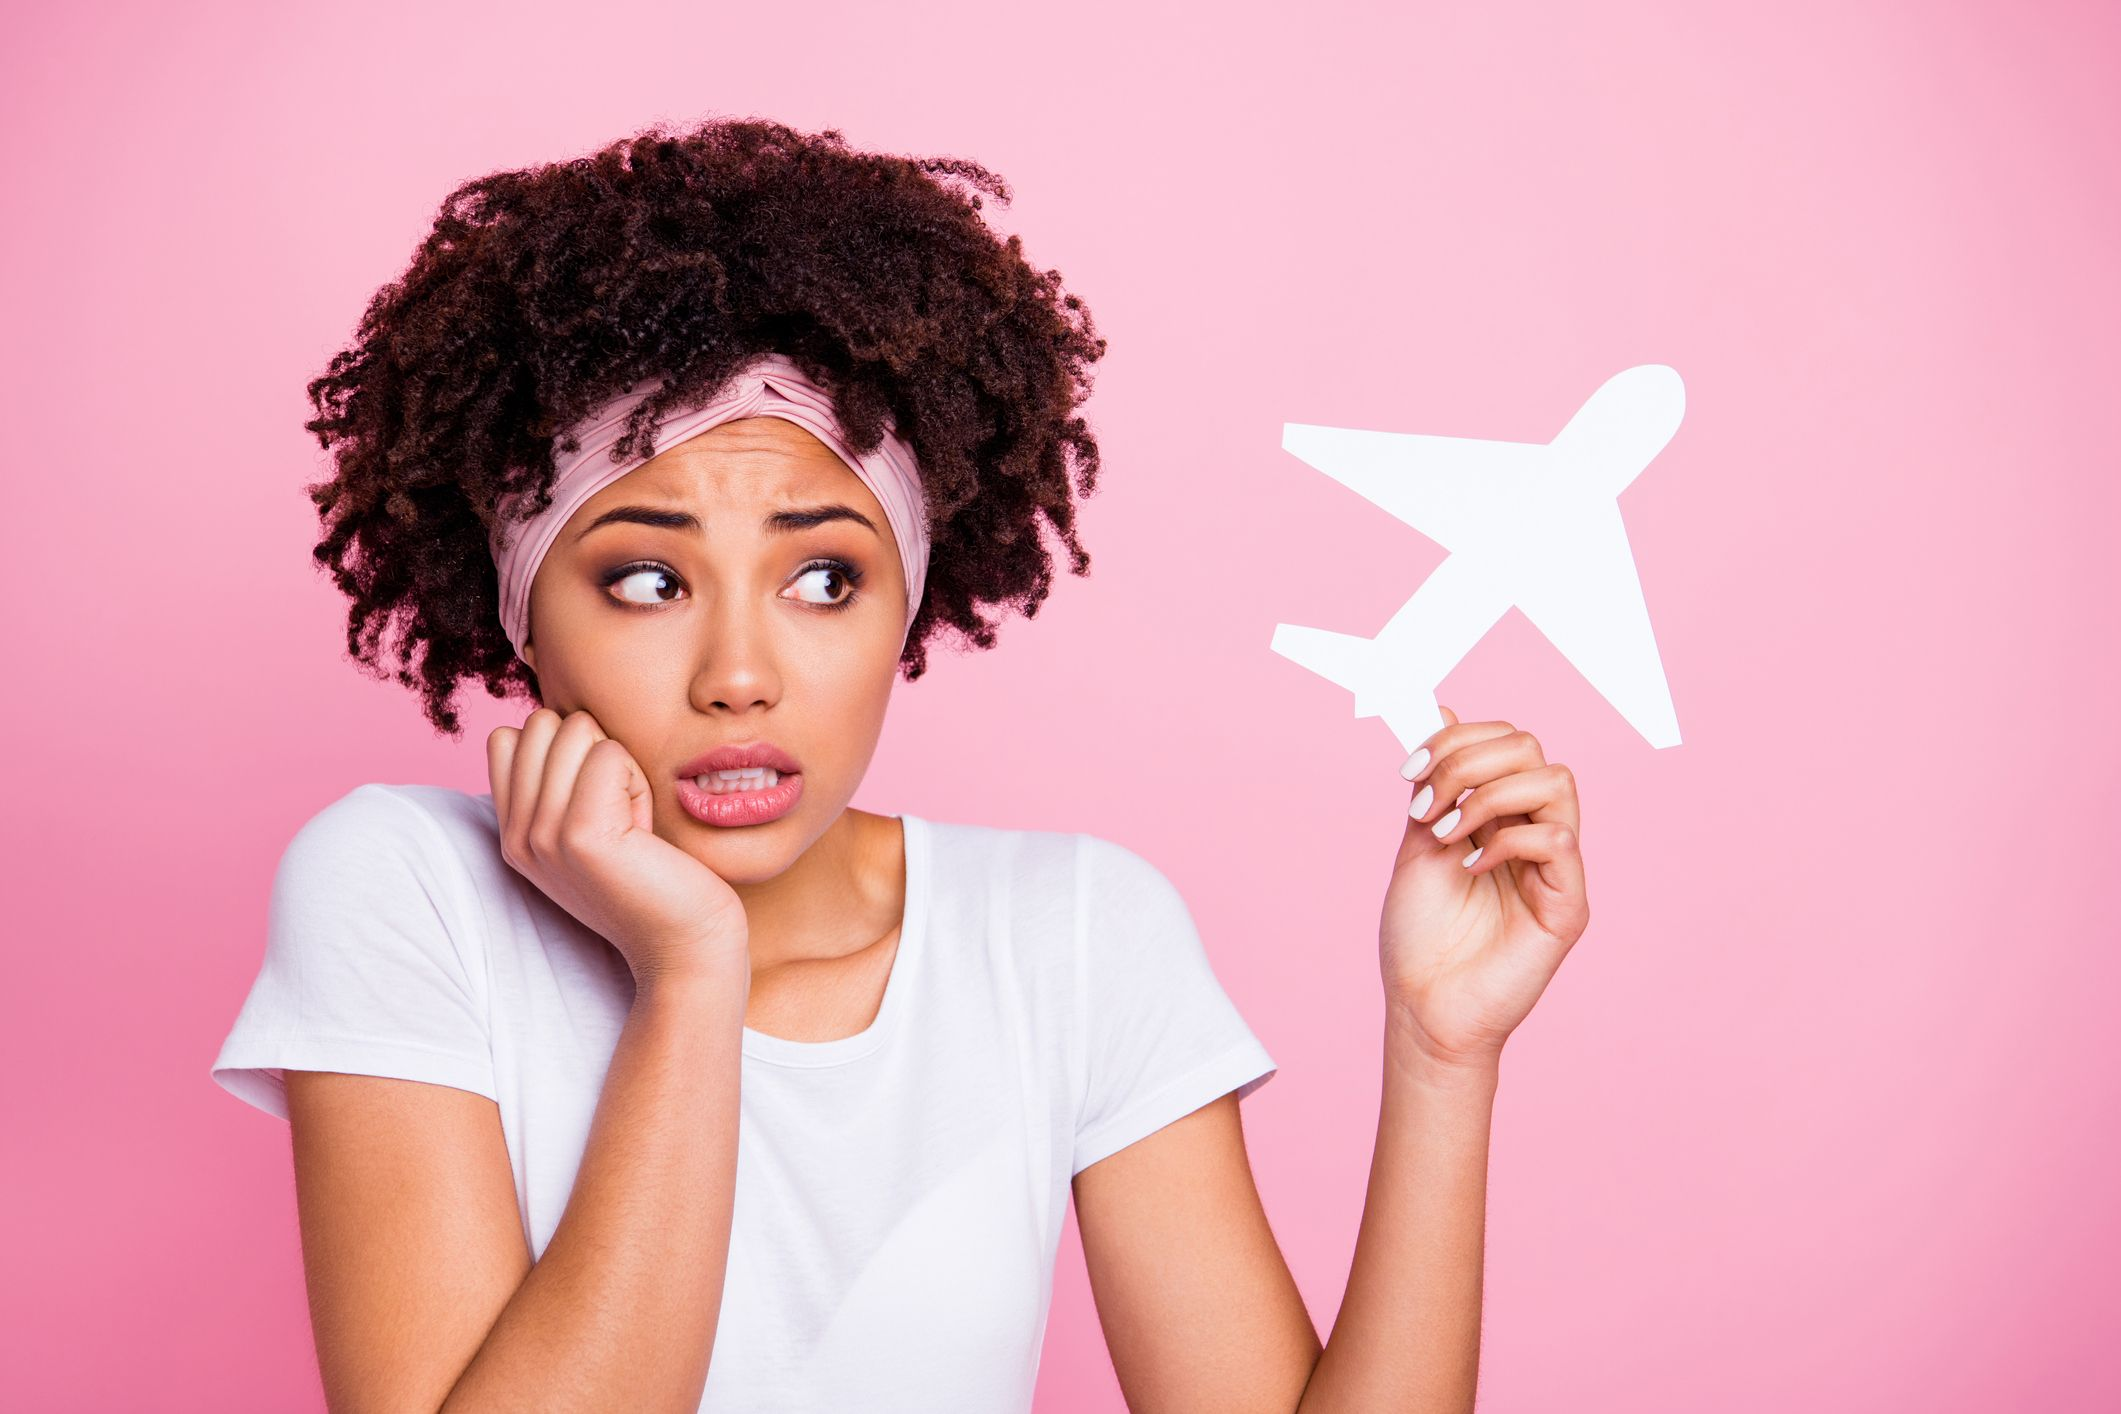 Aviophobia: 6 tips to overcome your fear of flying